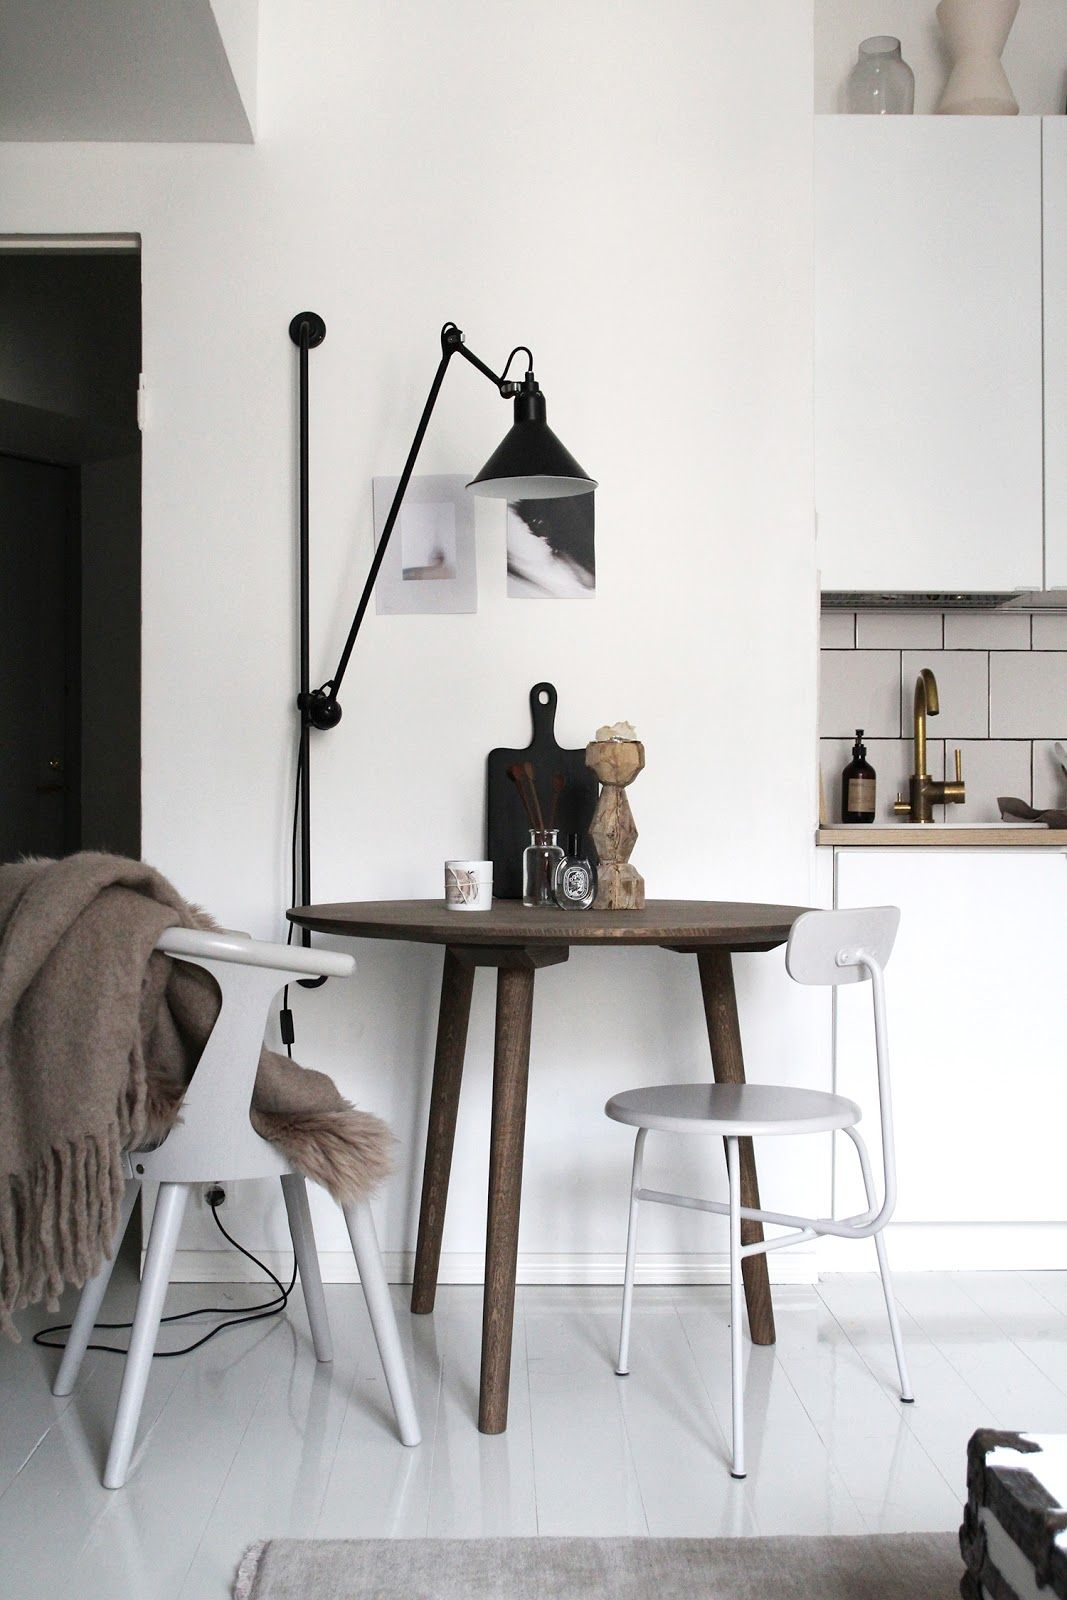 In Between Sk3 Table Raw Design Blog Dining Room Lighting Dining Room Decor Dining Room Design Lights above kitchen table